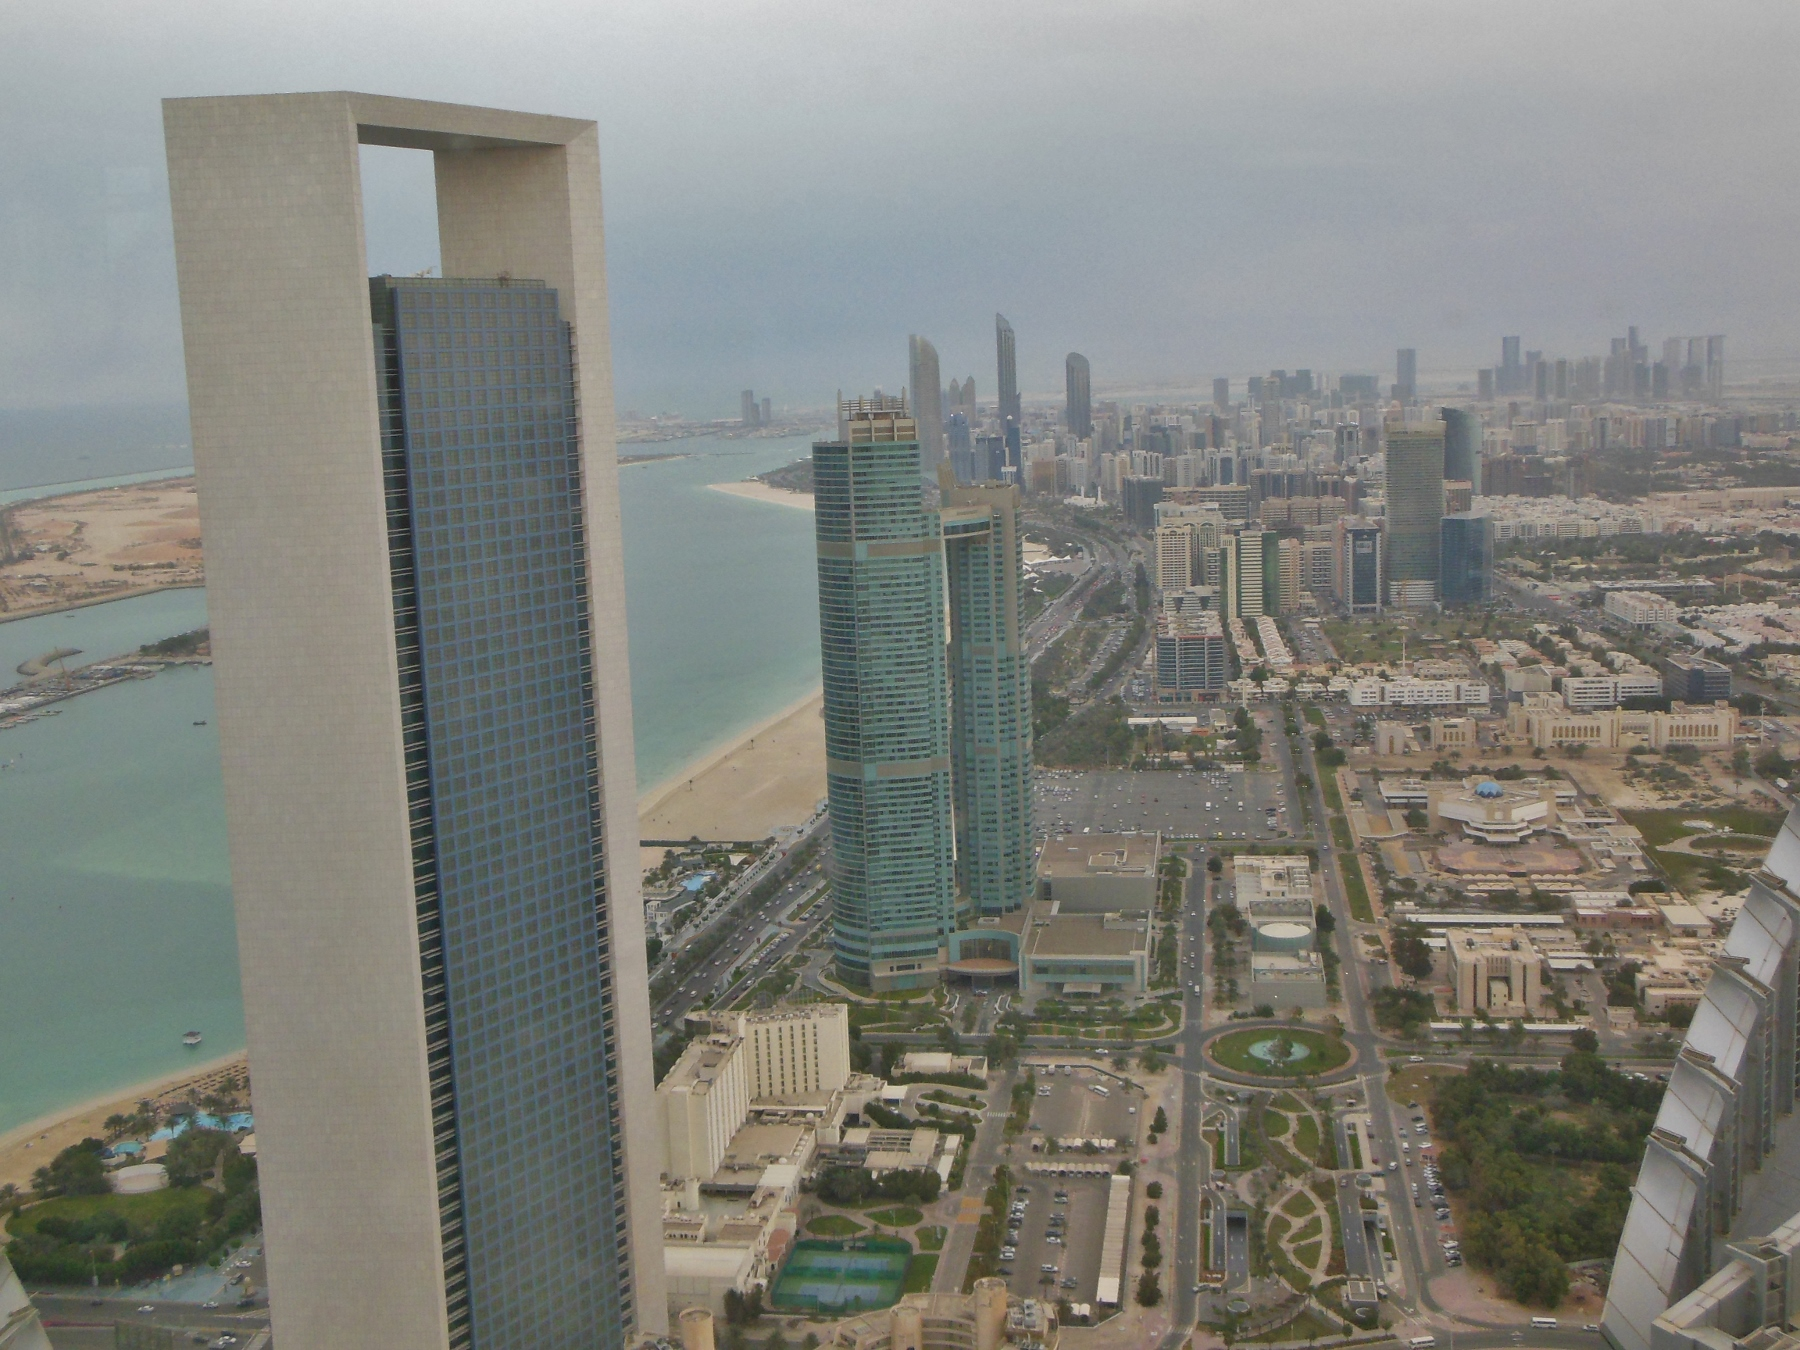 abu dhabi view from 74th floor of Ethihatet Tower (1800x1350) - Kopie